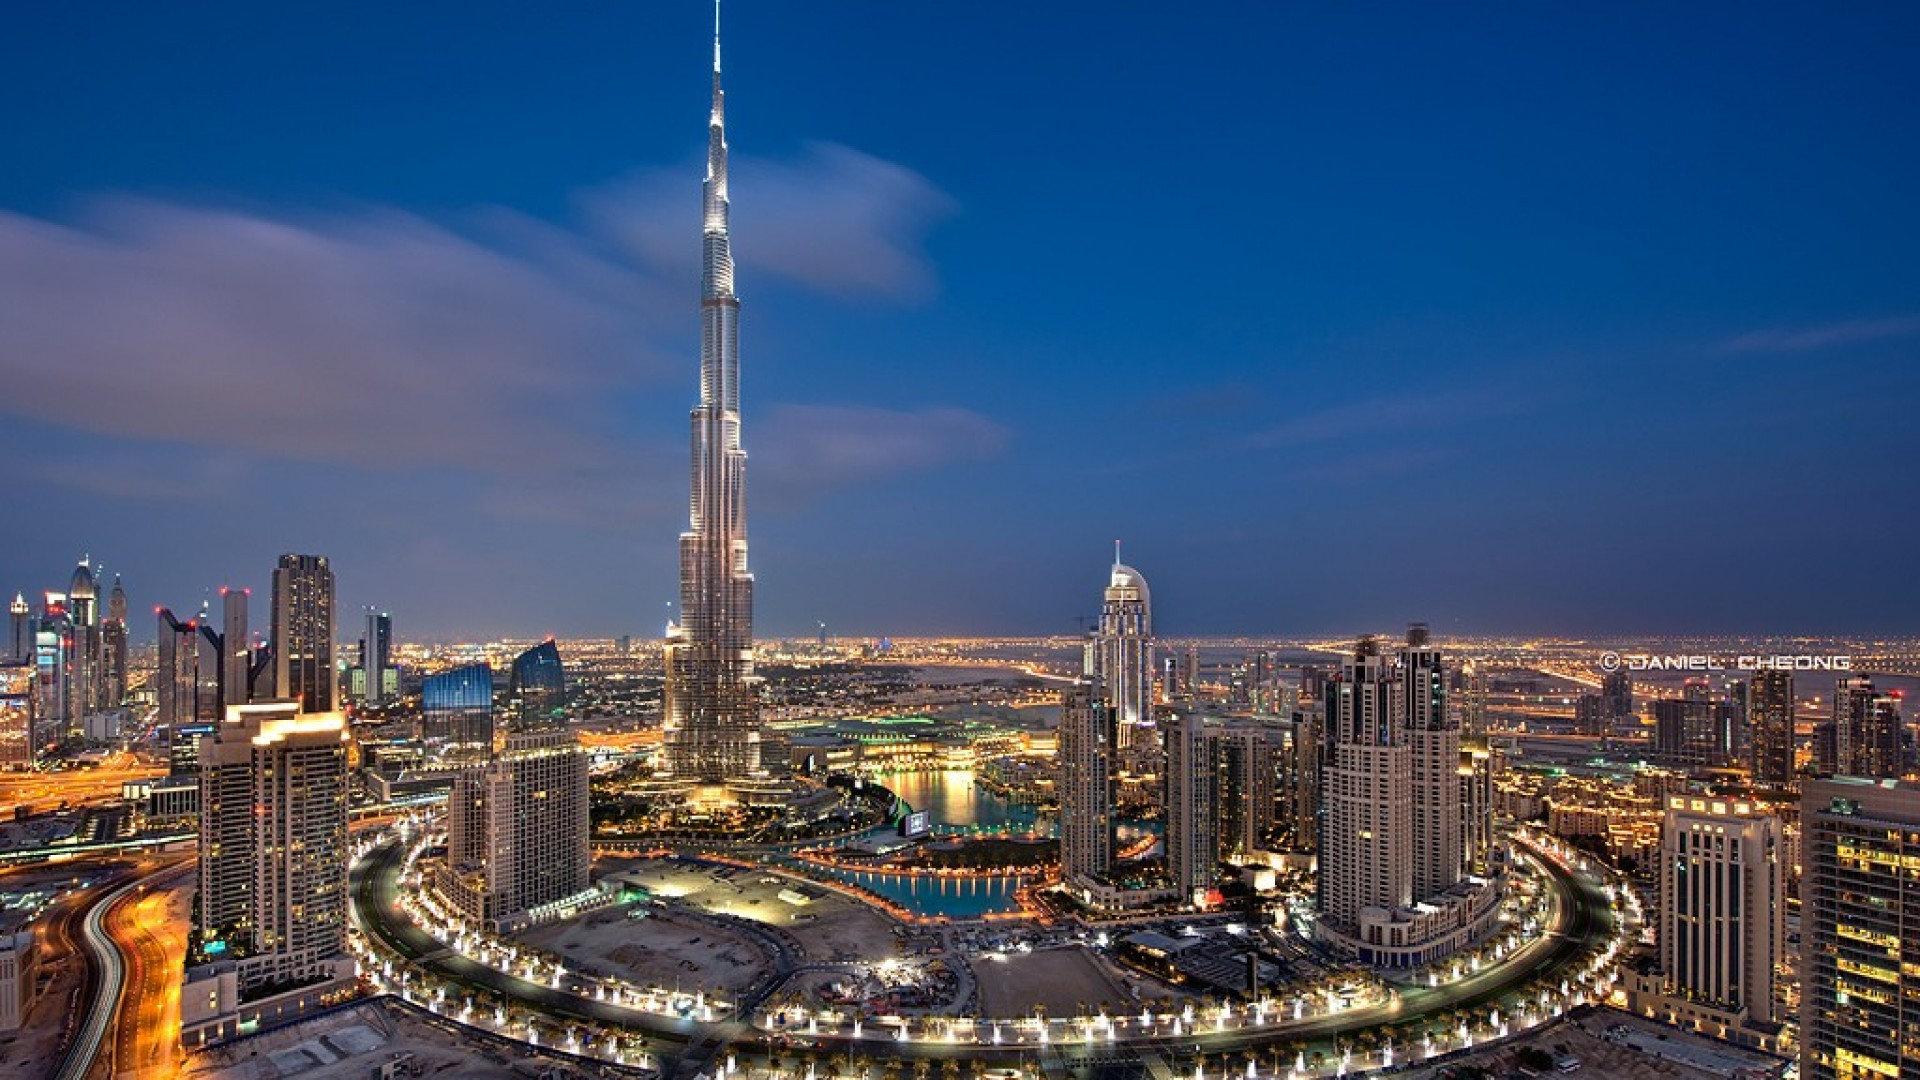 Burj Khalifa Wallpapers HD Live HD Wallpaper HQ Pictures Images 1920x1080